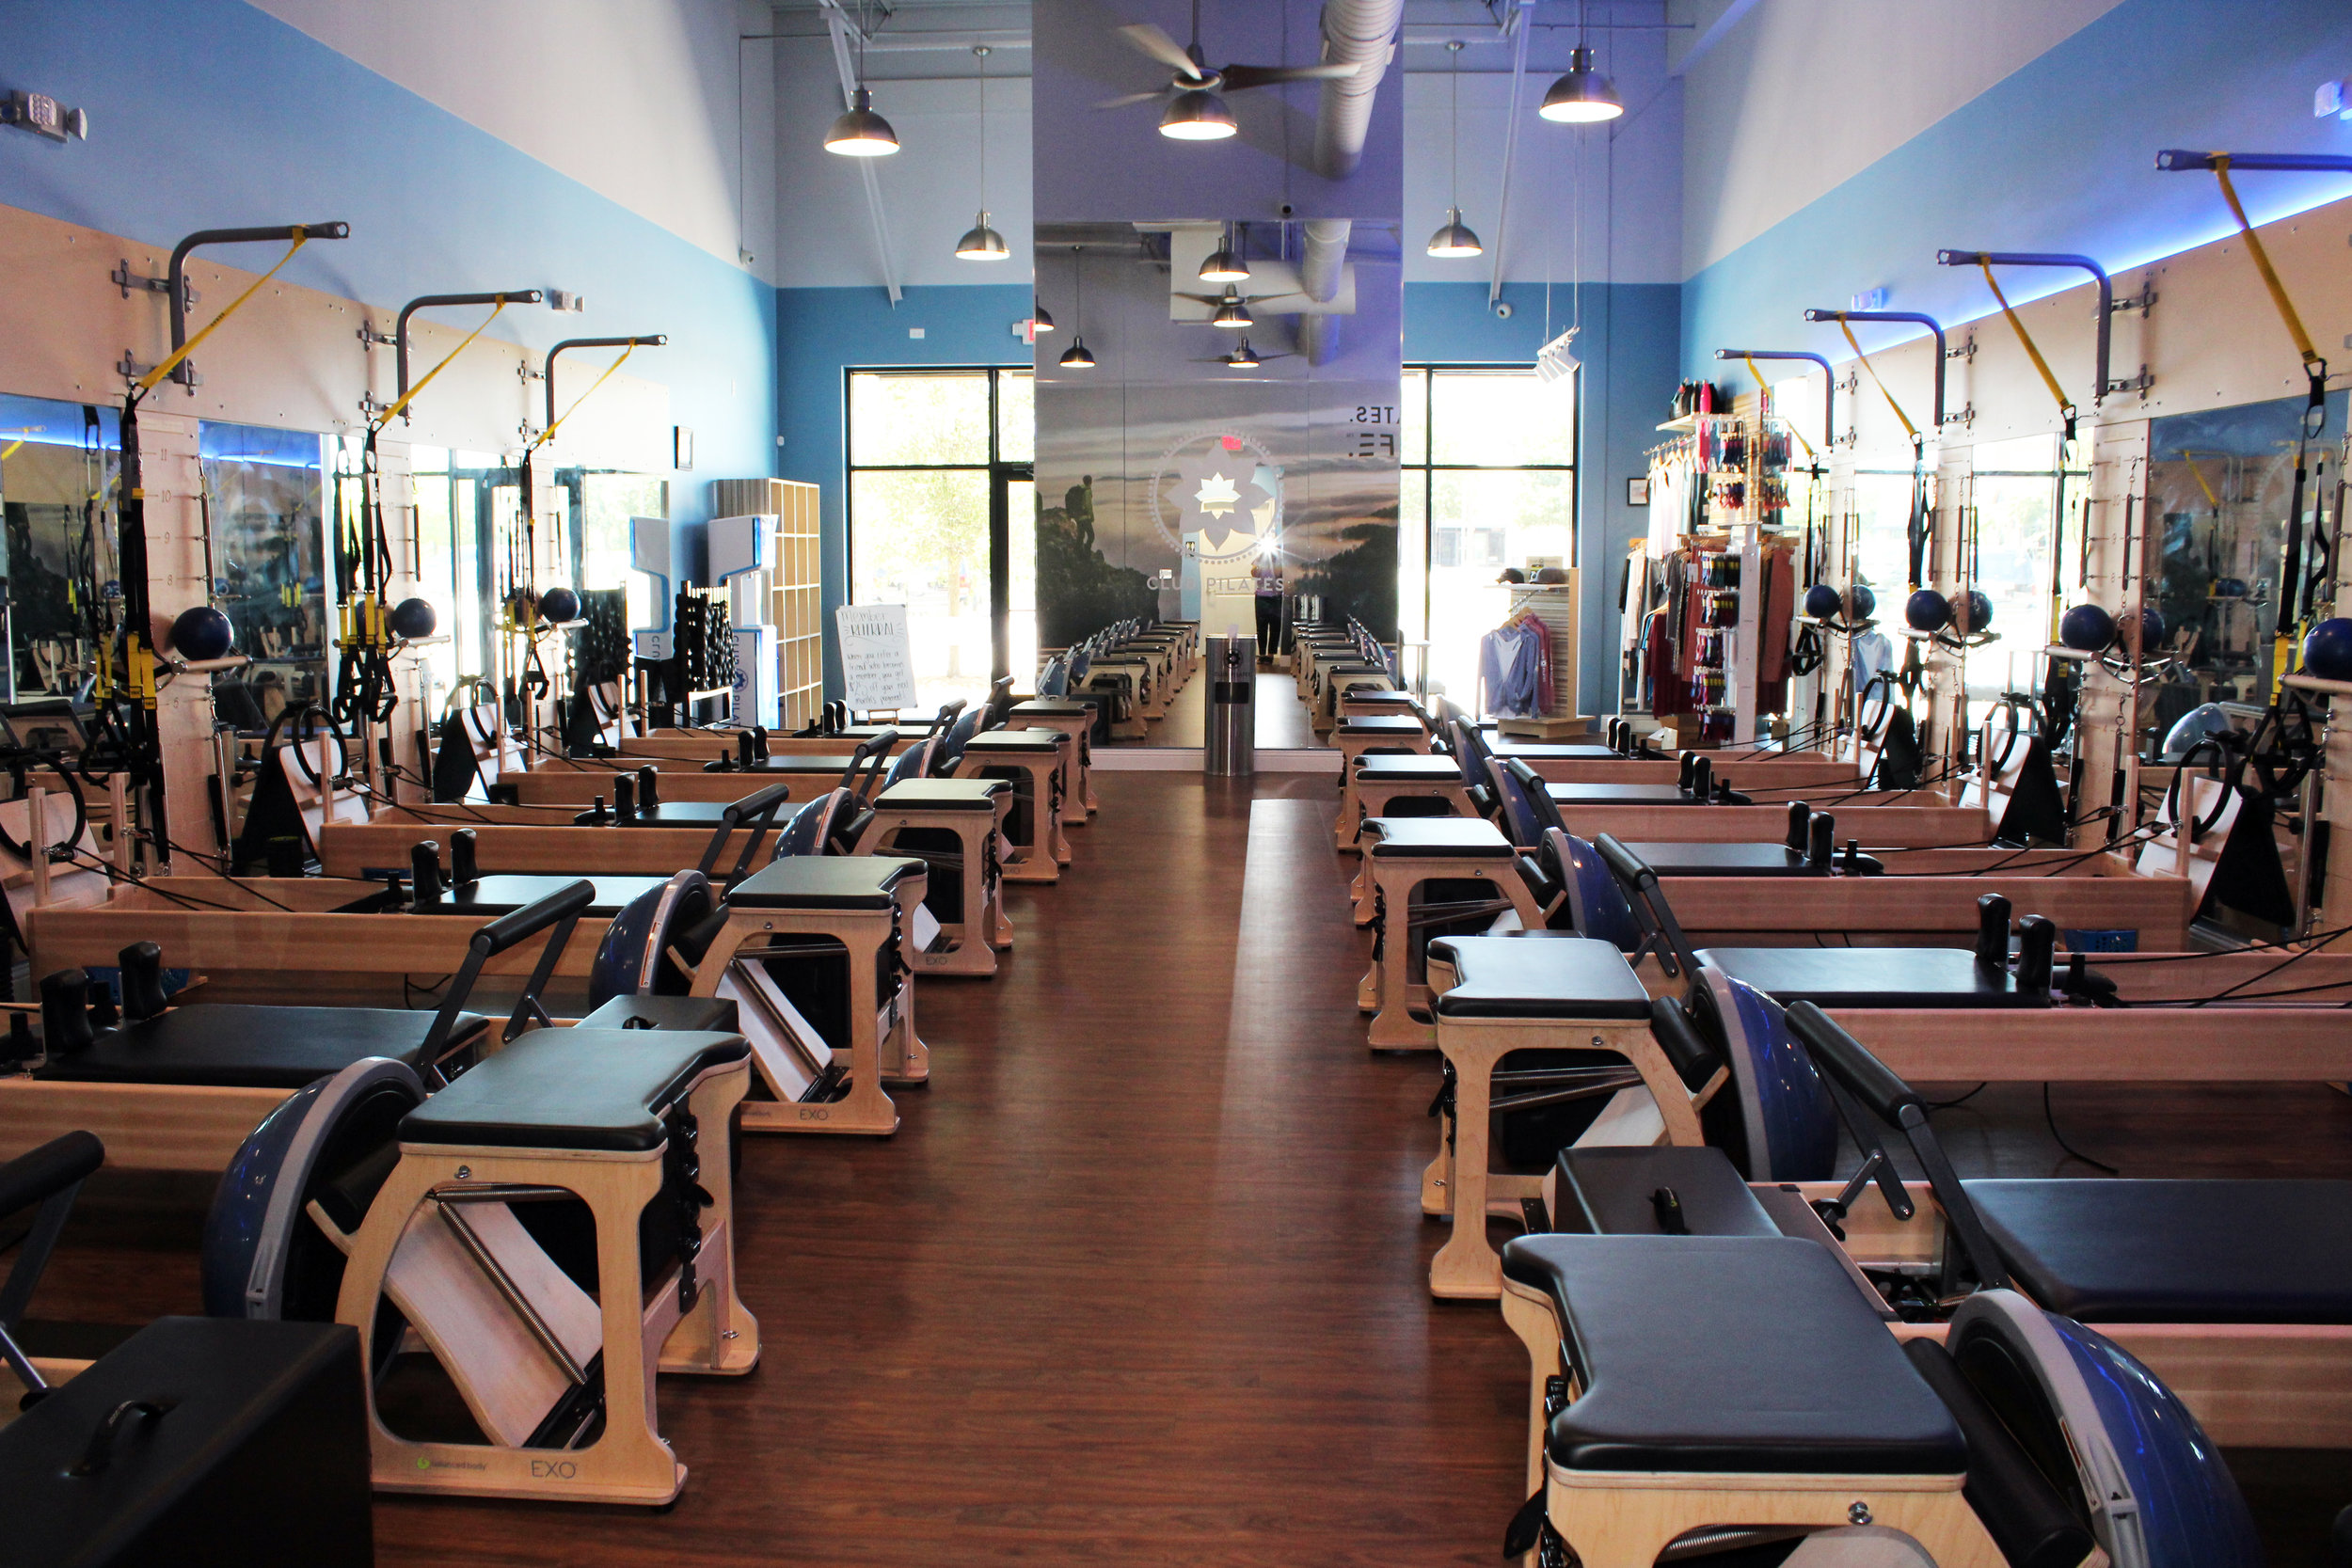 At each of the 12 workout stations, there is a reformer (main piece of equipment), springboard, mat, BOSU ball, EXO chair, TRX straps, foam roller and a variety of other exercise equipment.